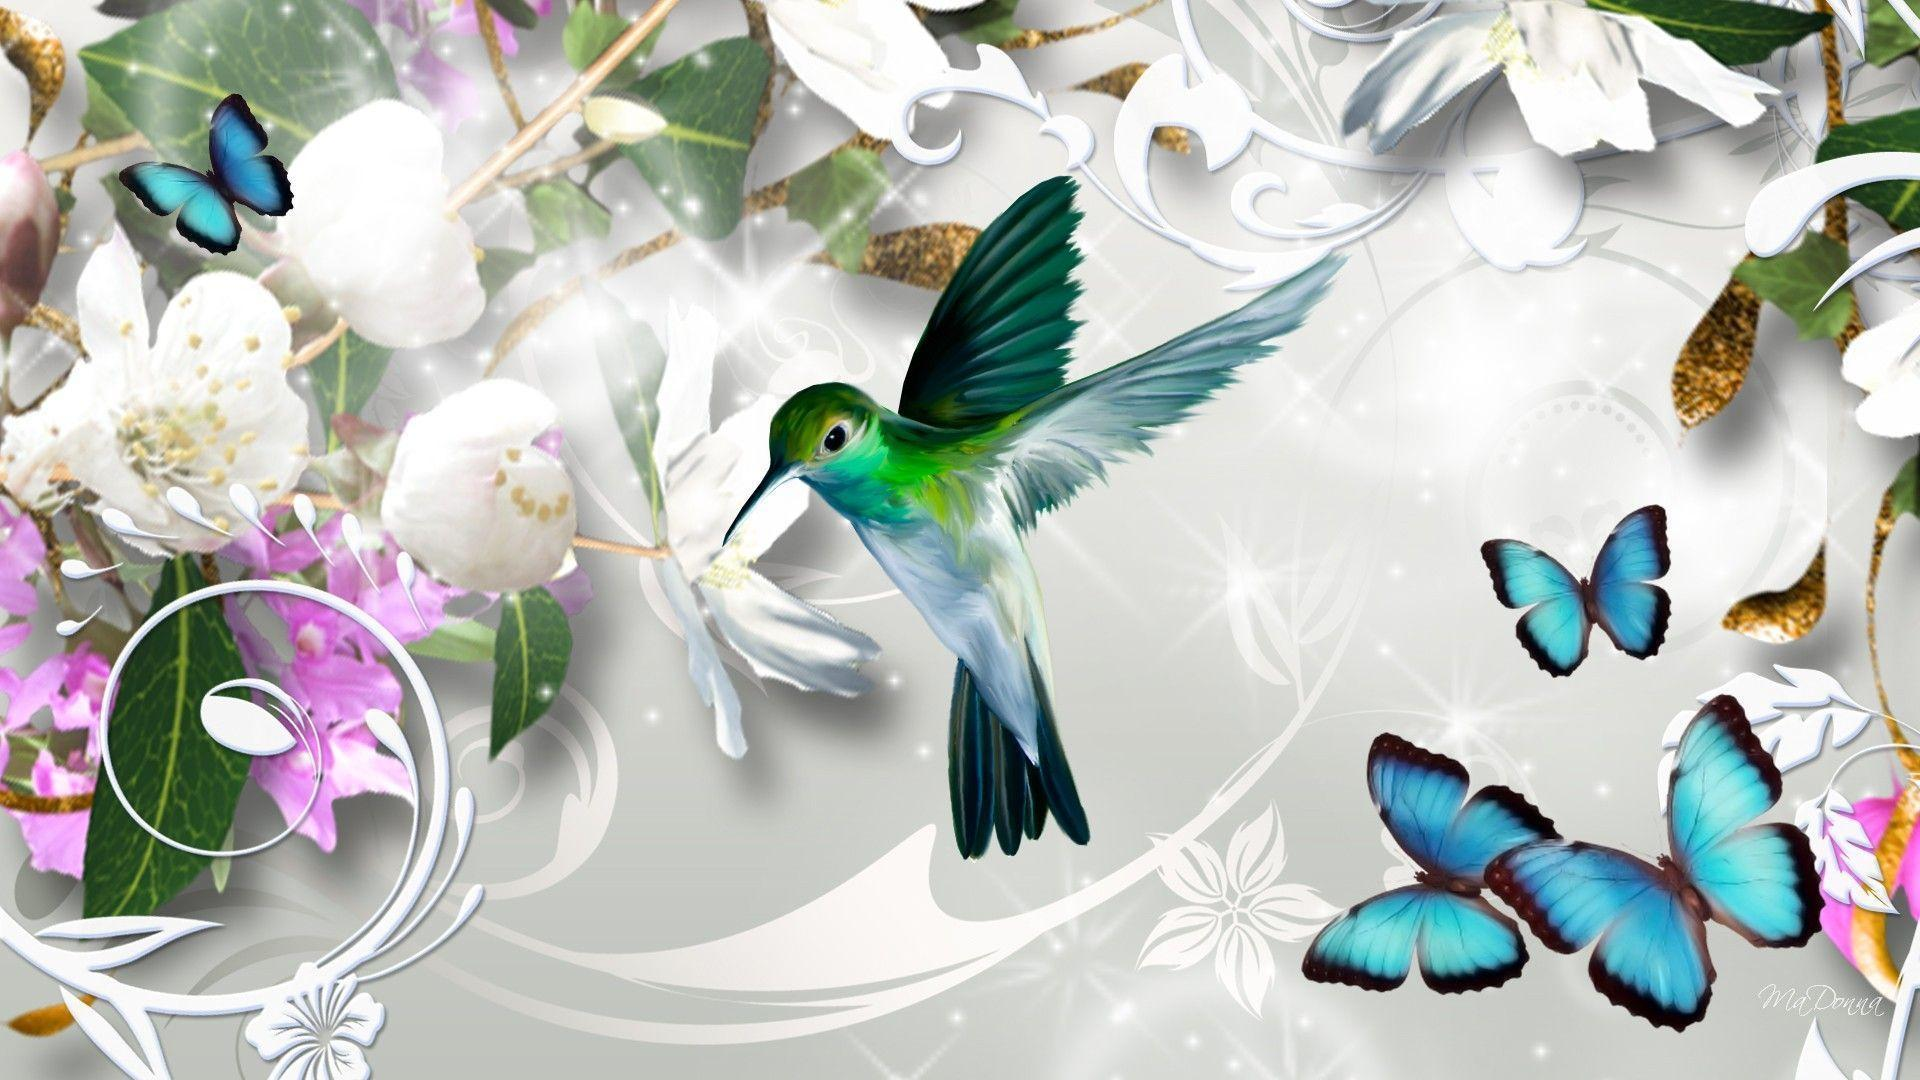 Animals For > Hummingbird Wallpapers Abstract